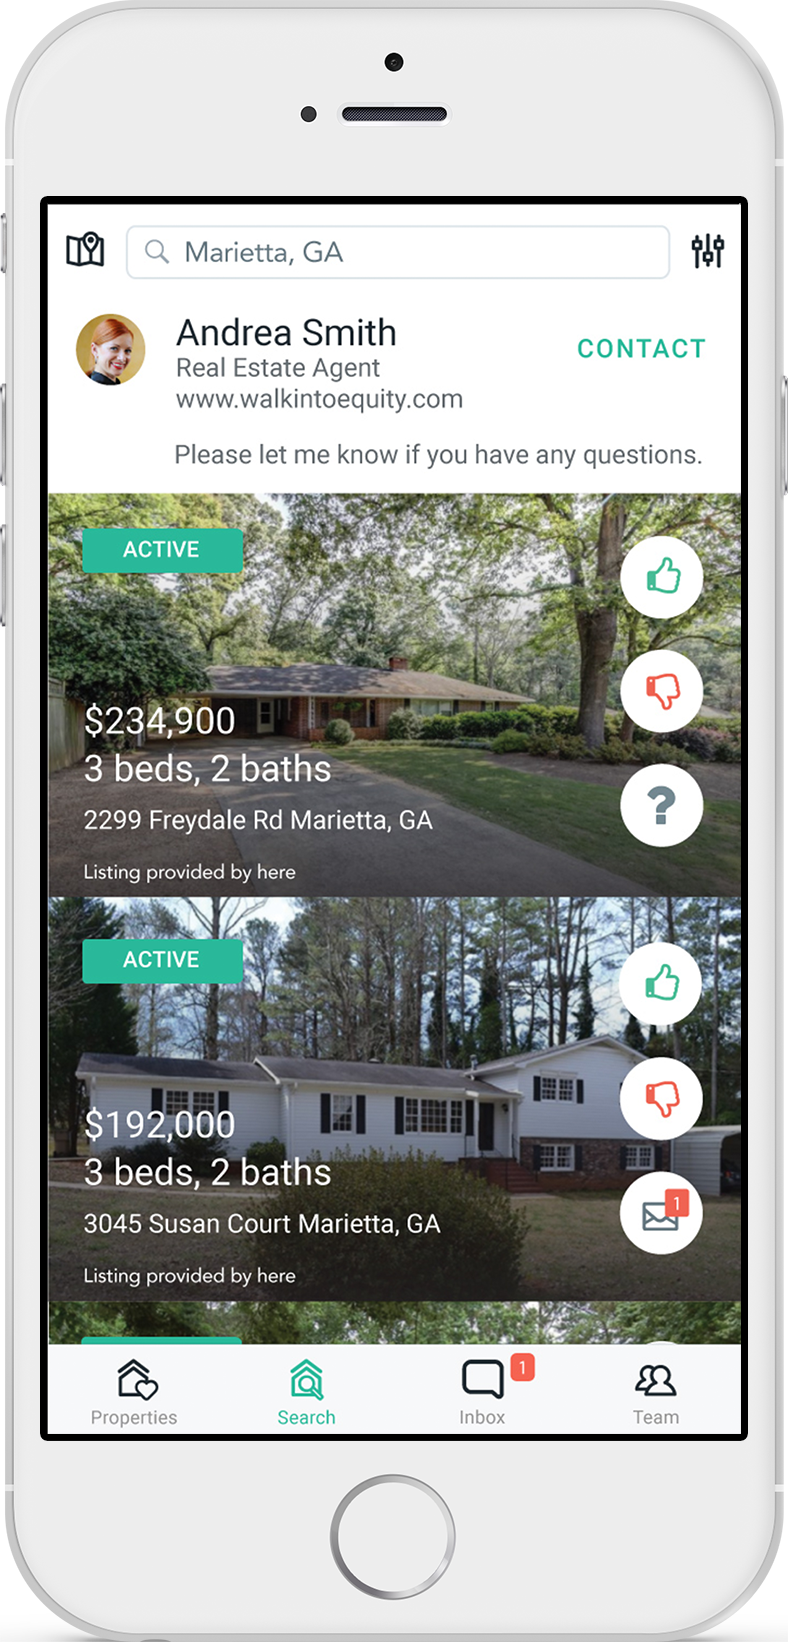 houses-app-branding-white-iphone.png